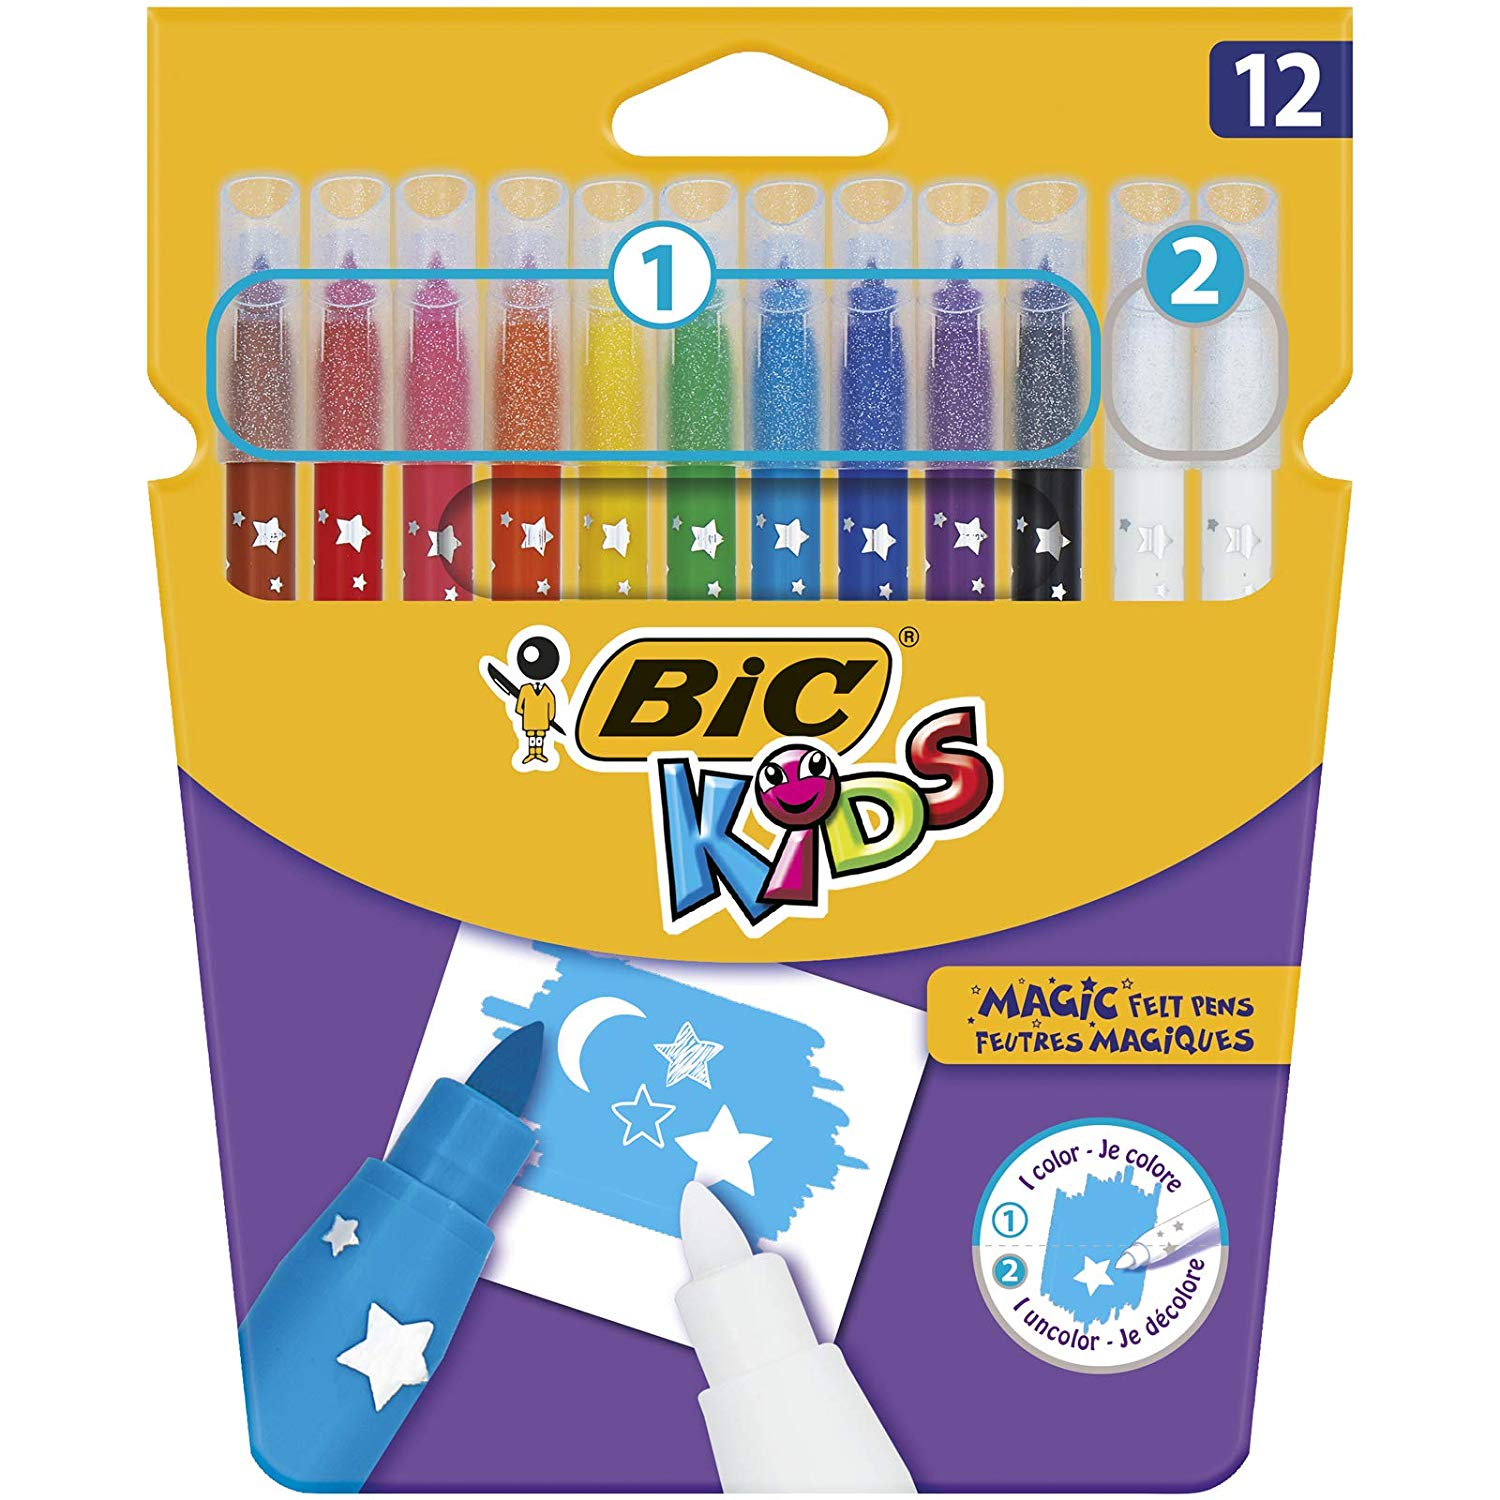 BIC Kids Magic Felt Pens – Wallet of 12 (ADD-ON ITEM)